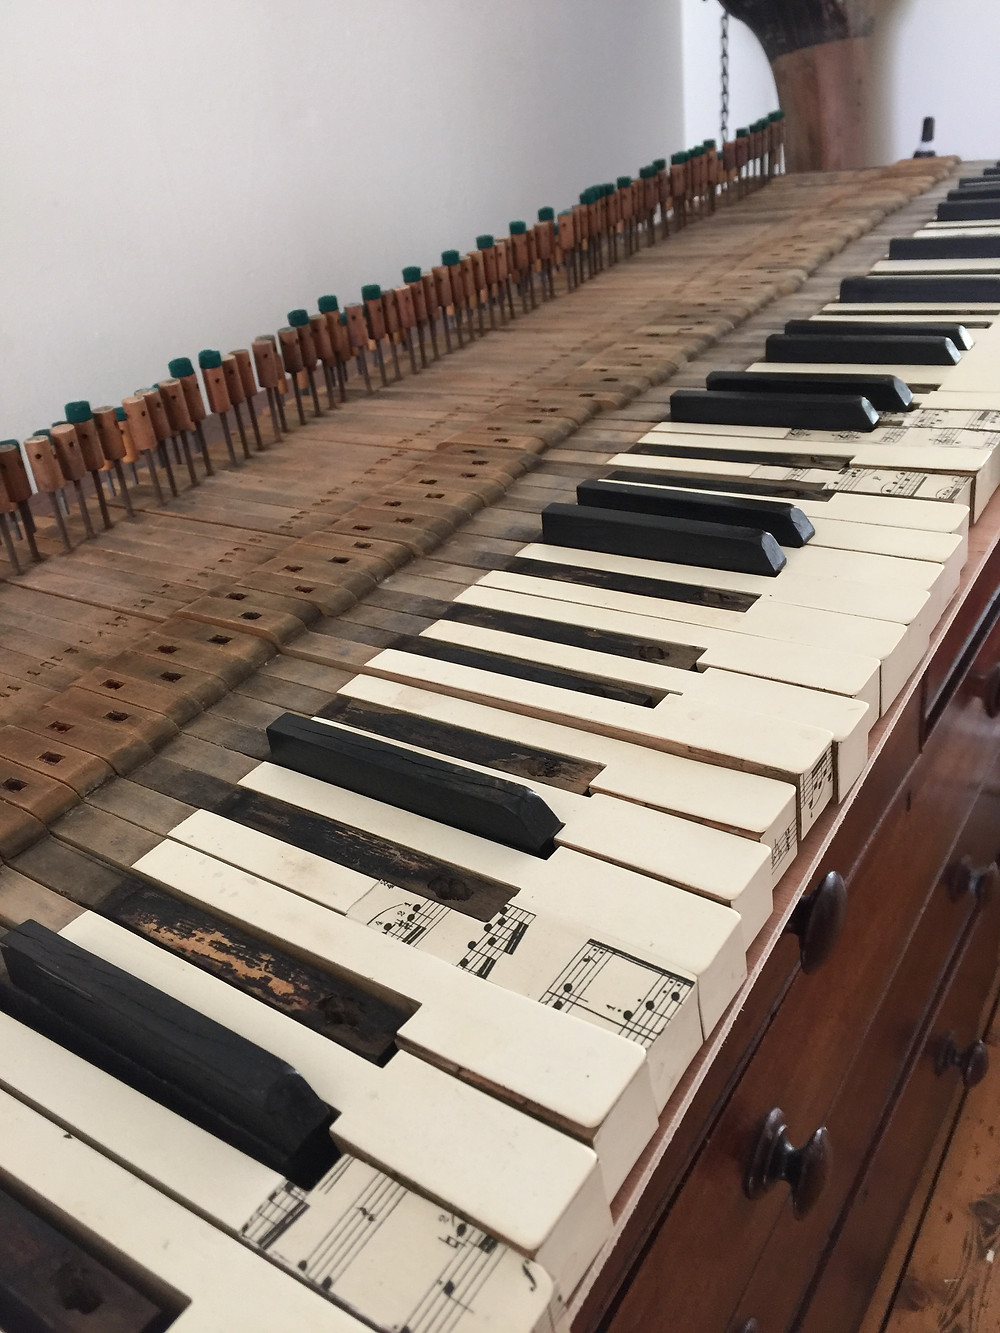 Gathering 3 sets of piano keys